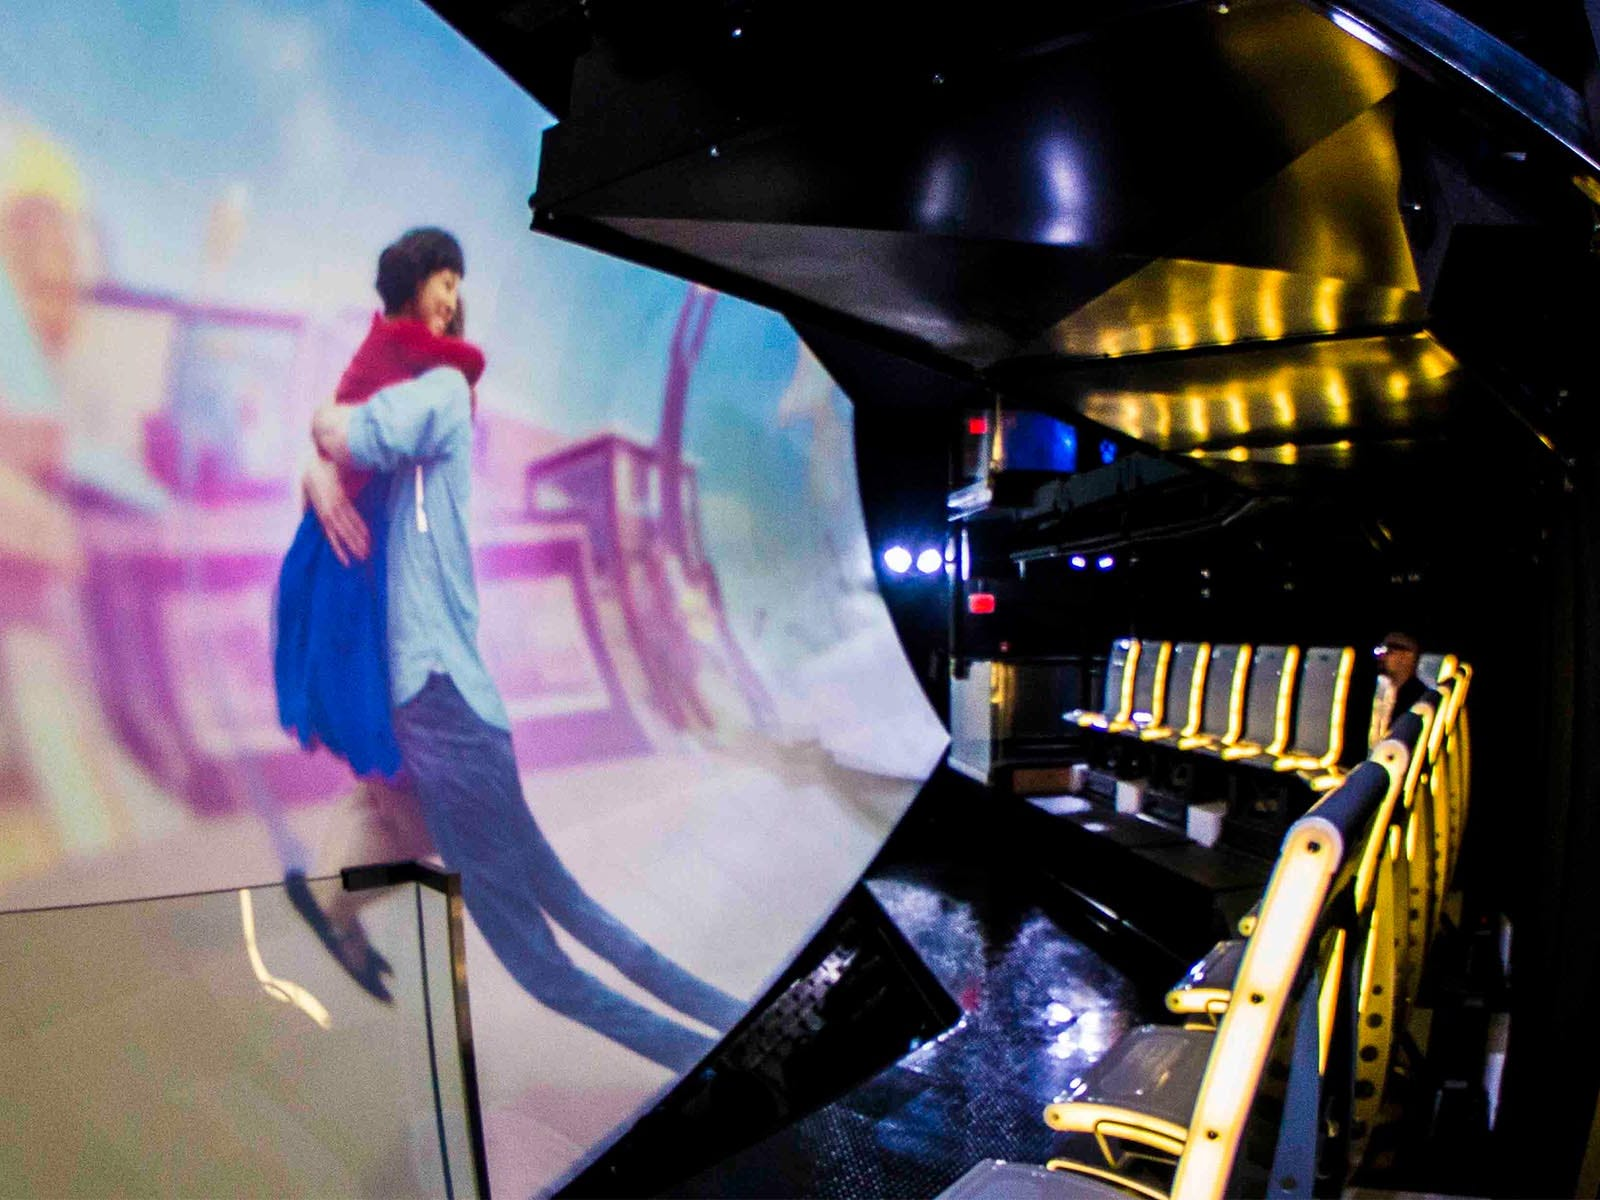 The Flyer's main theater has 28 seats arranged in two levels in front of an enveloping, curved screen. The seats remained tethered to the floor, but each pair has its own actuatorthat allows them to have more freedom of movement than other flying theaters.